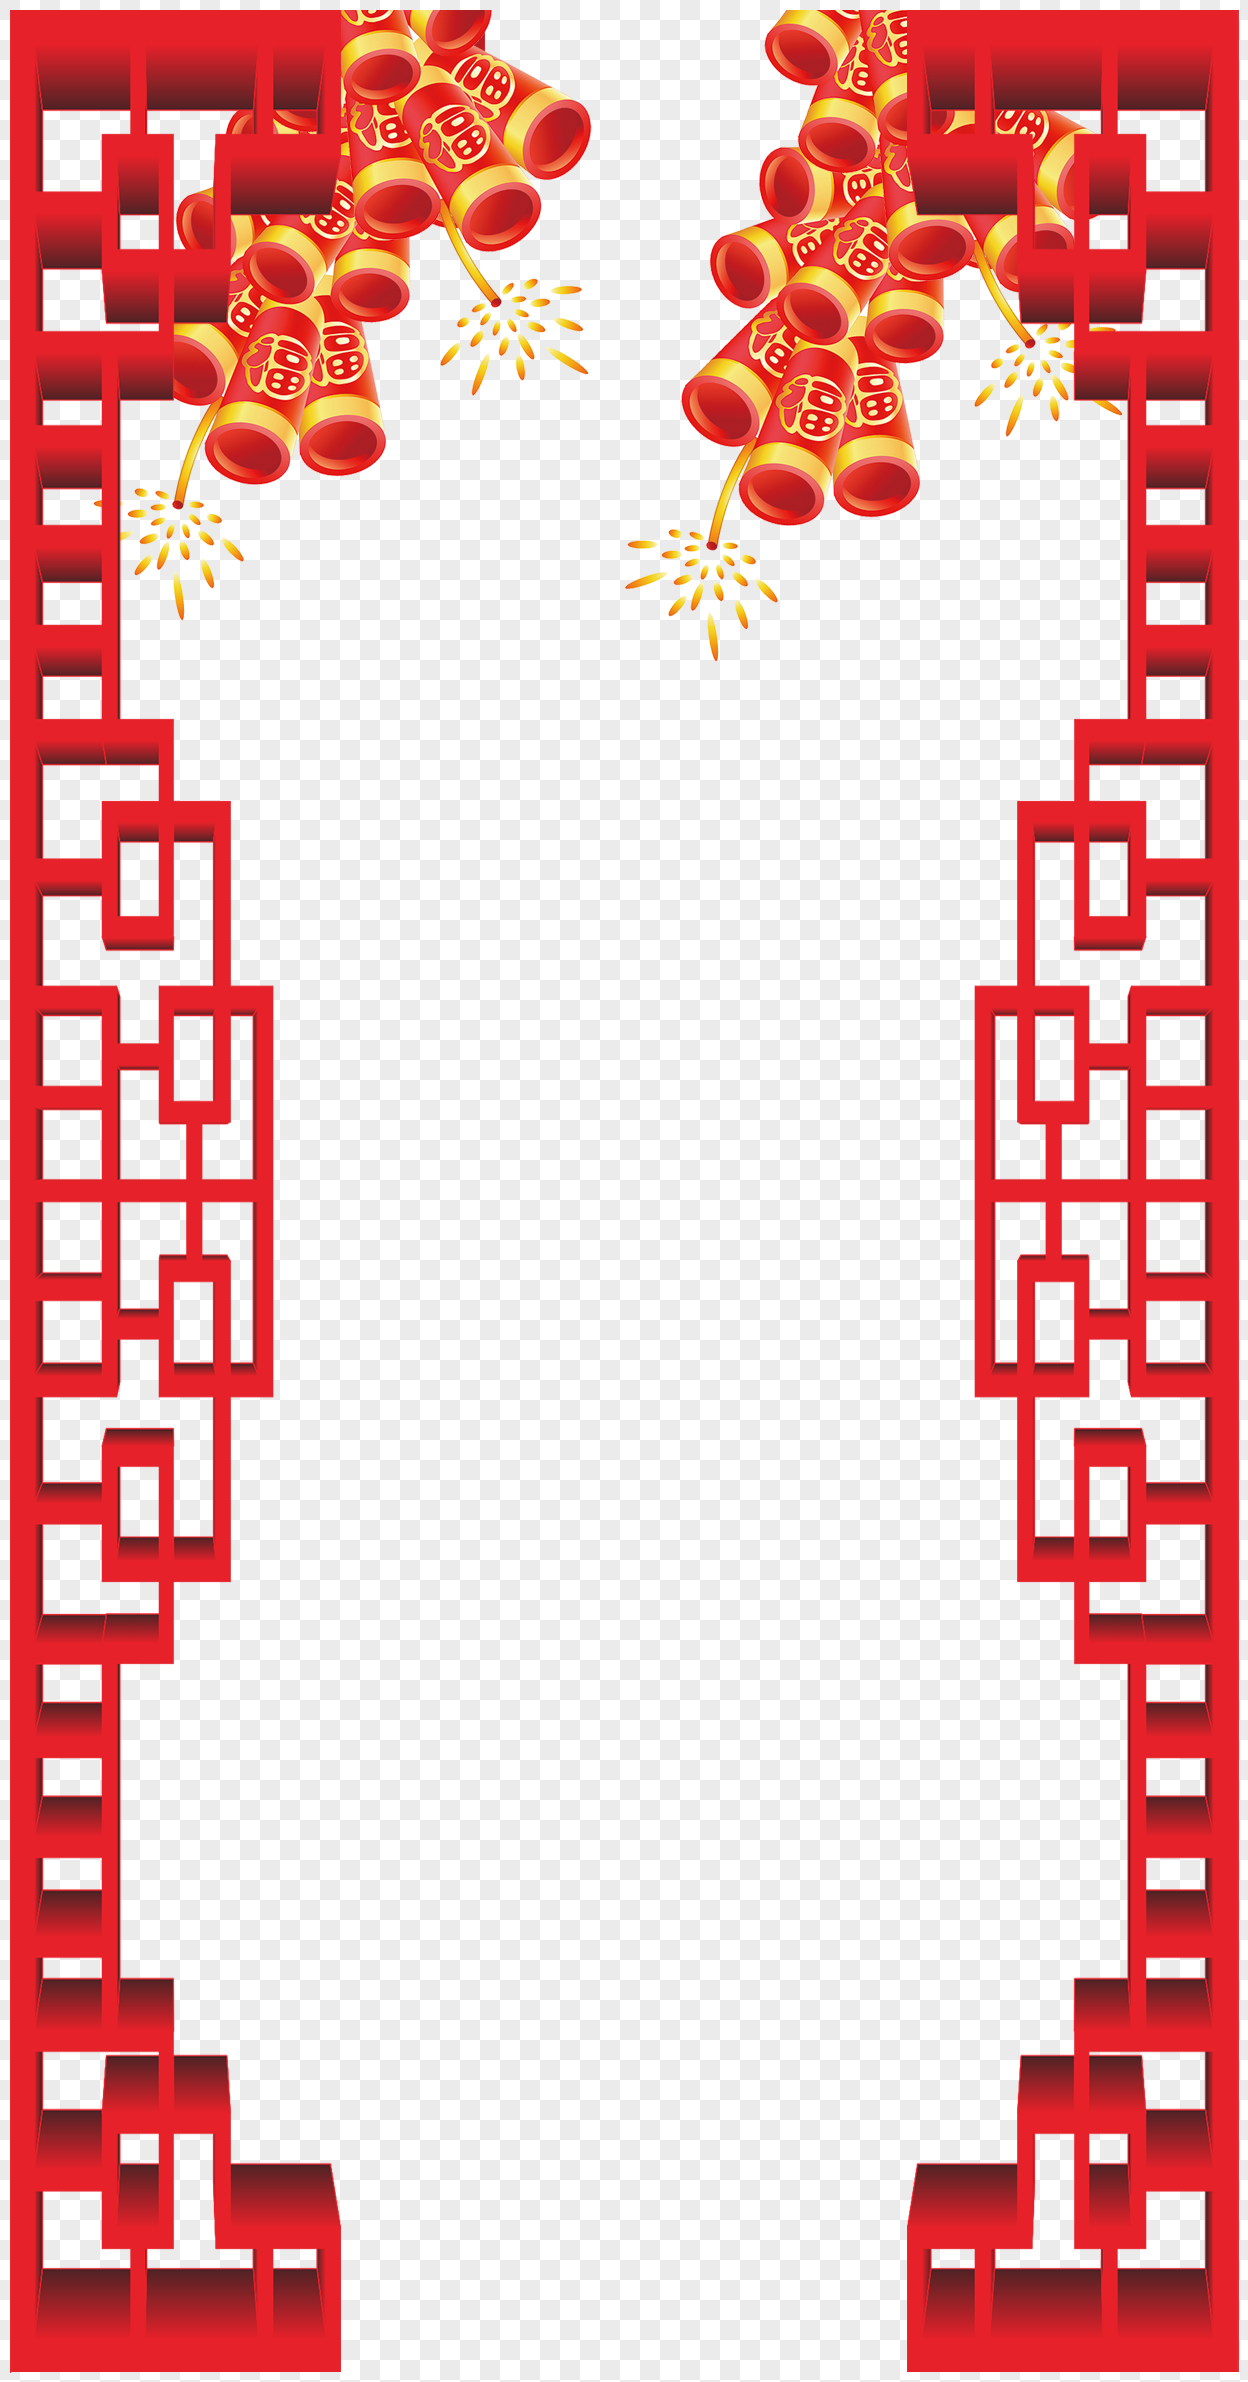 new year firecracker border material